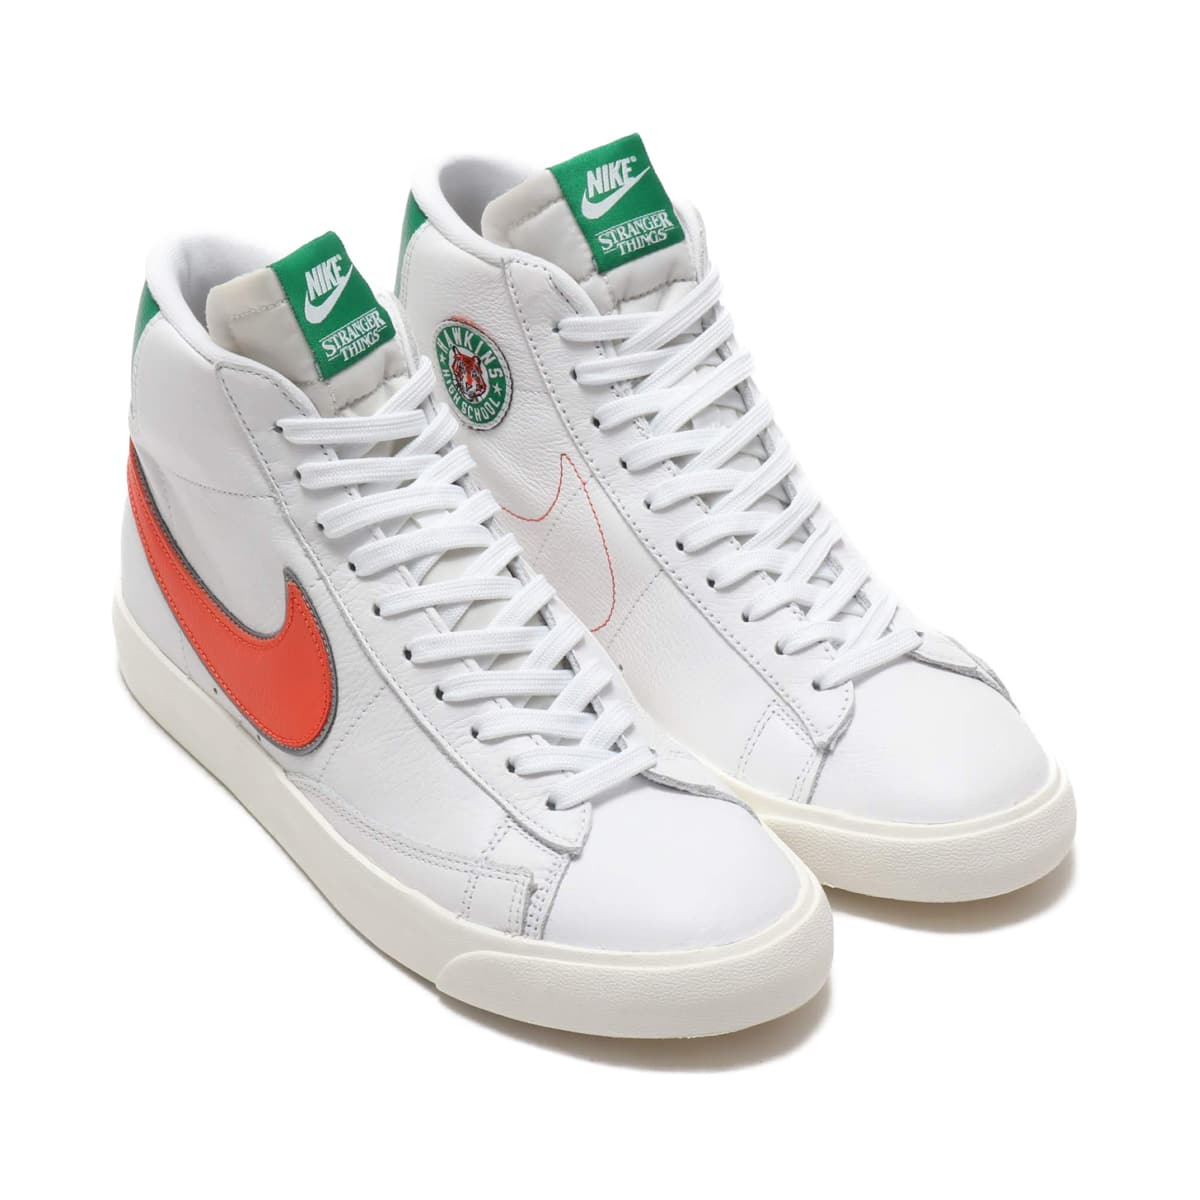 NIKE BLAZER MID QS HH WHITE/COSMIC CLAY-PINE GREEN-SAIL 19FA-S_photo_large